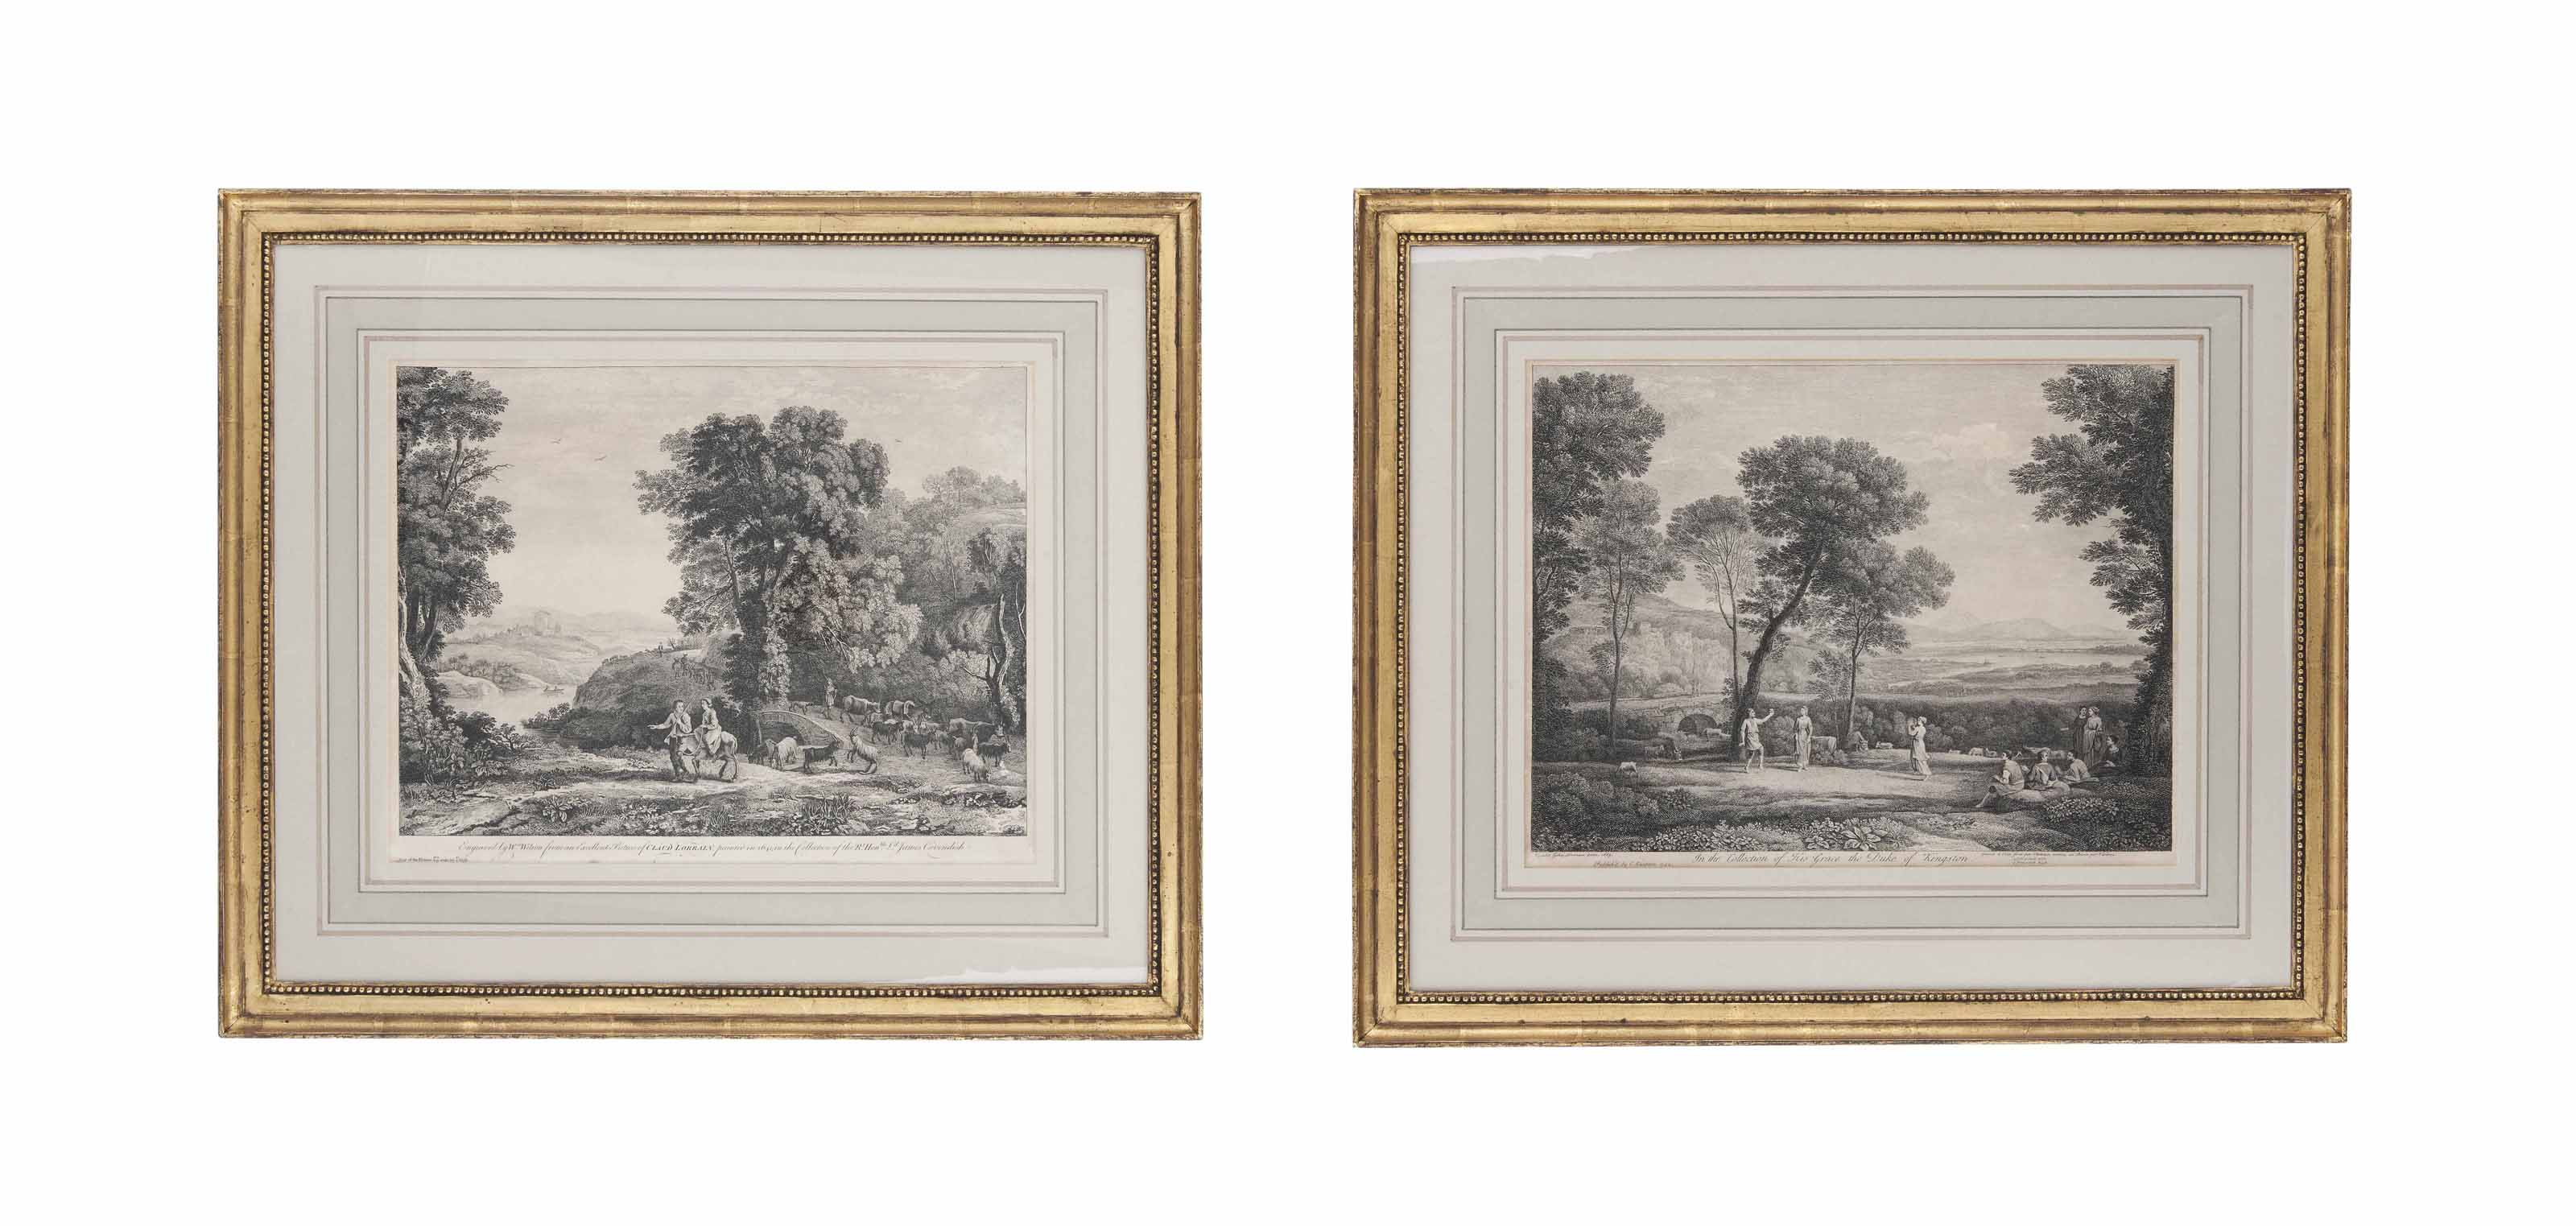 A GROUP OF FOUR ENGLISH ENGRAVINGS  OF LANDSCAPES